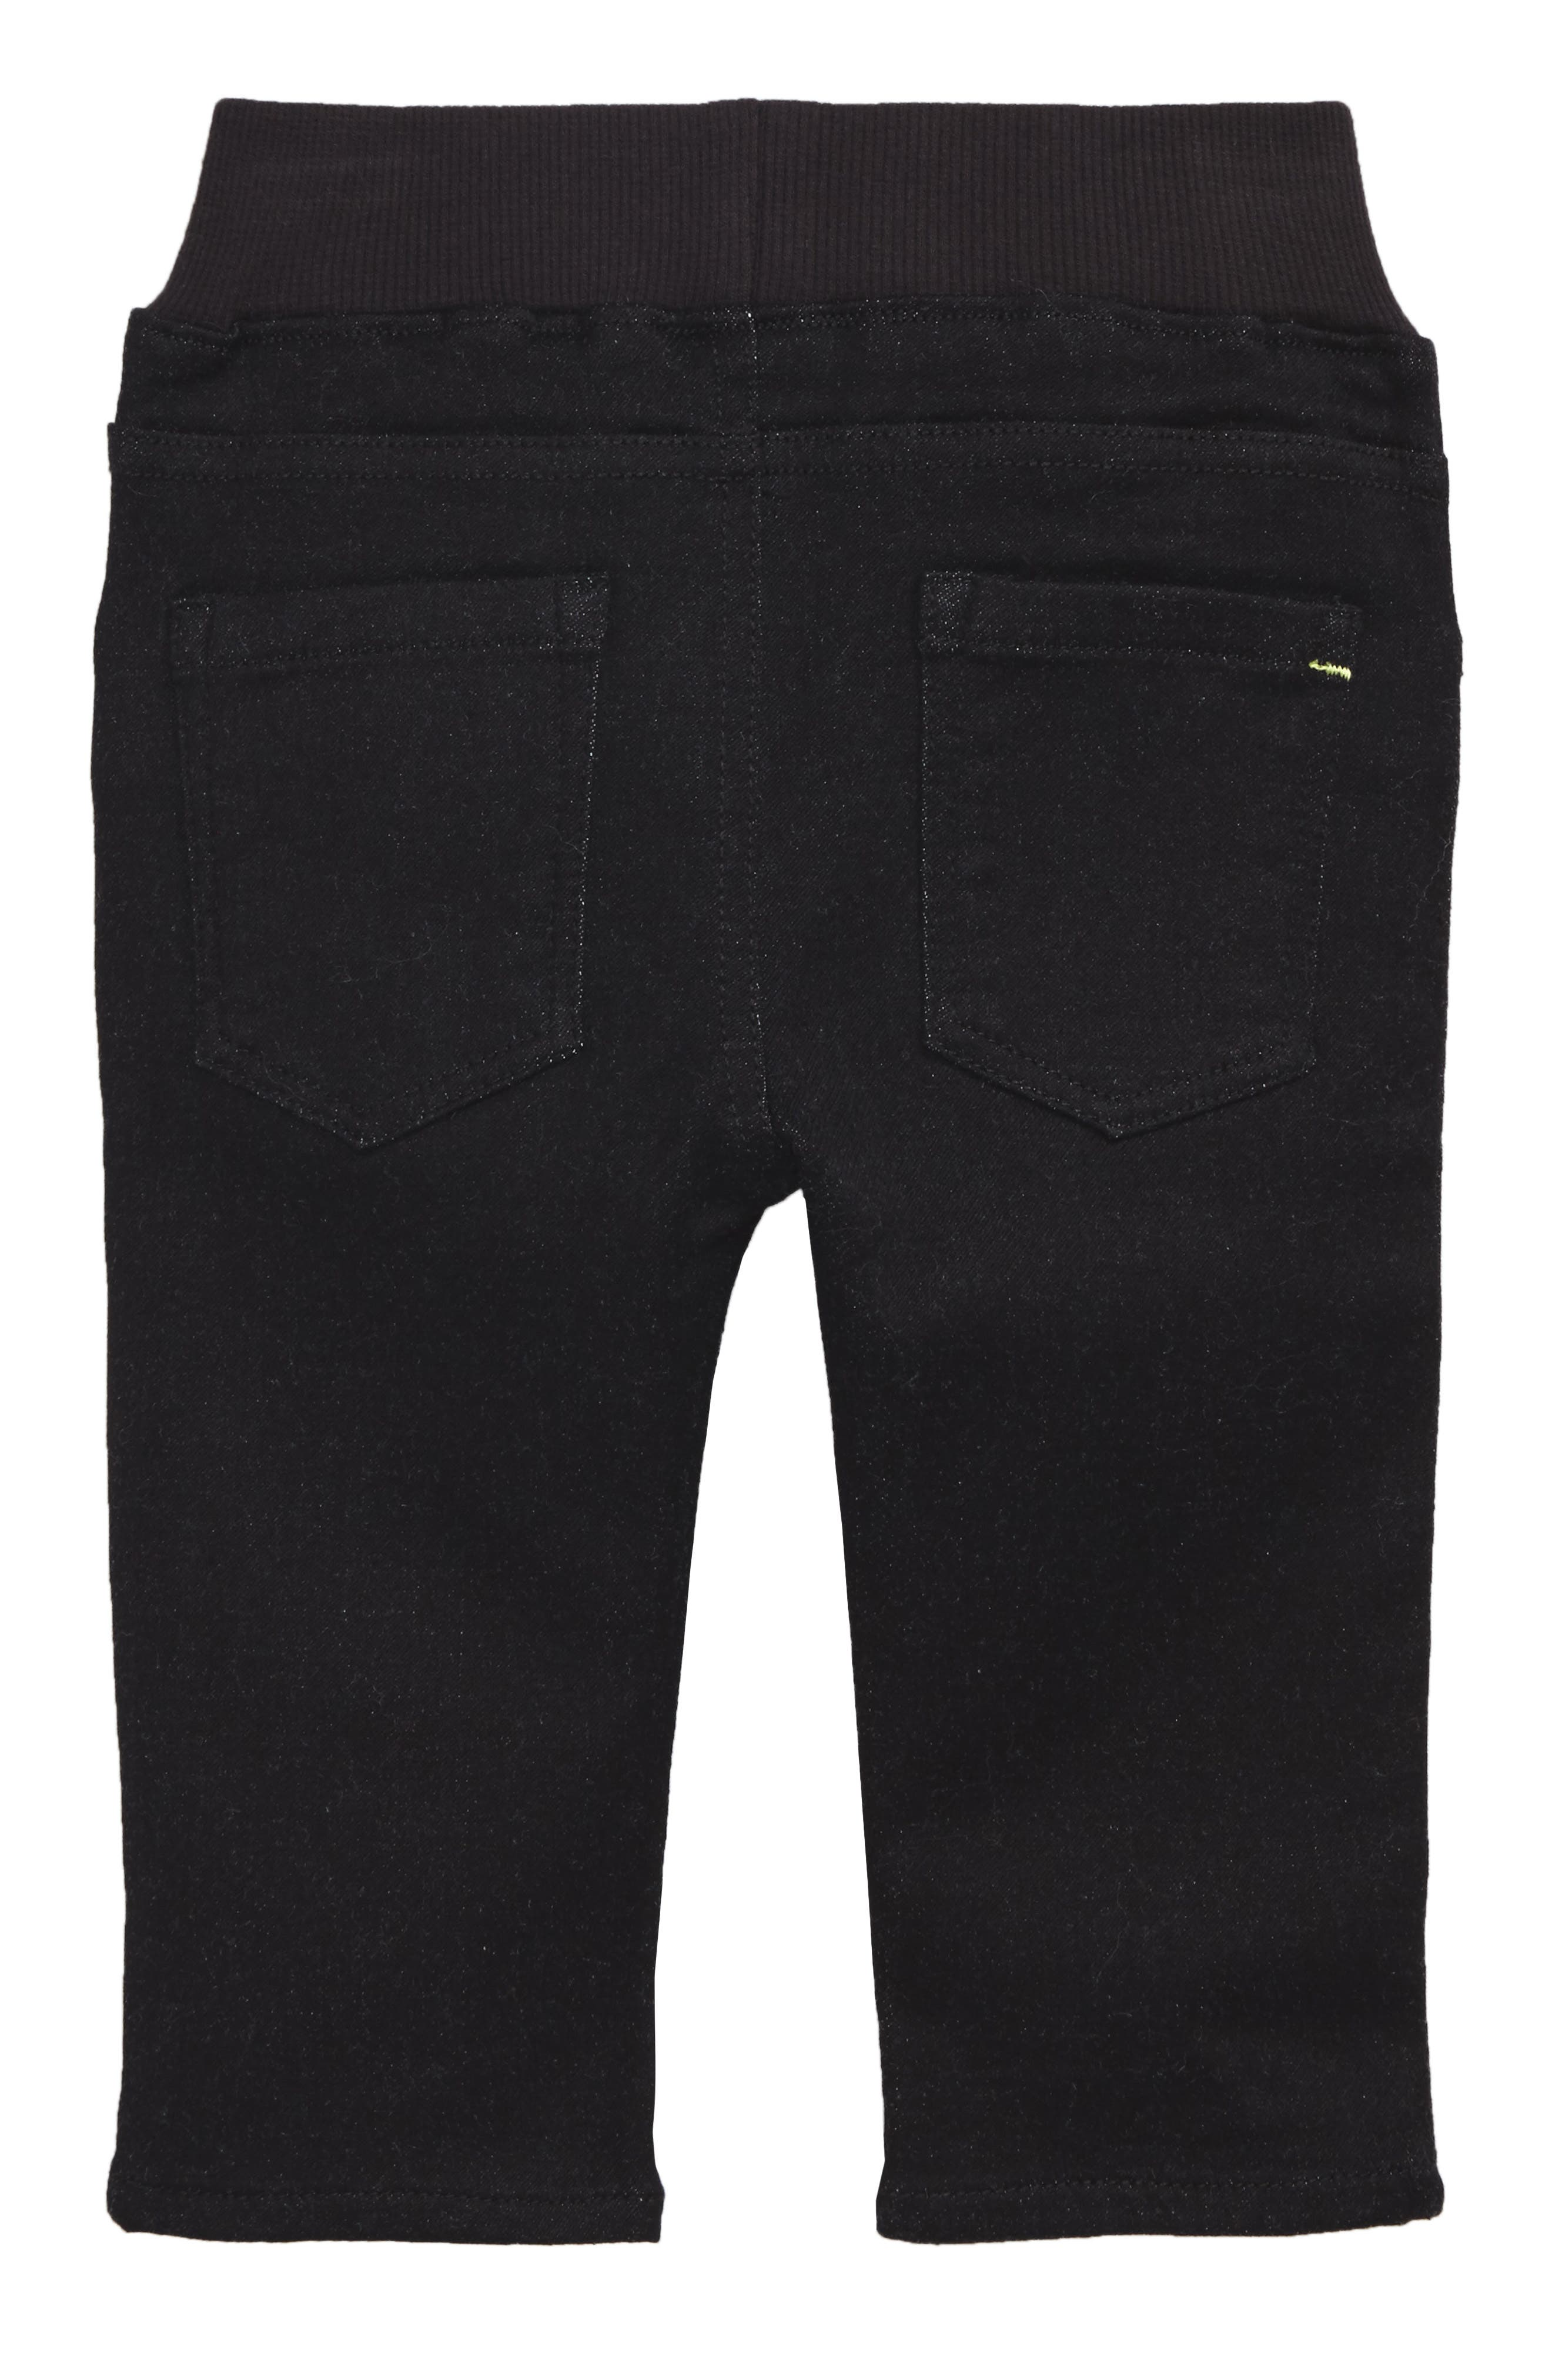 Soft Jeans,                             Alternate thumbnail 2, color,                             Black